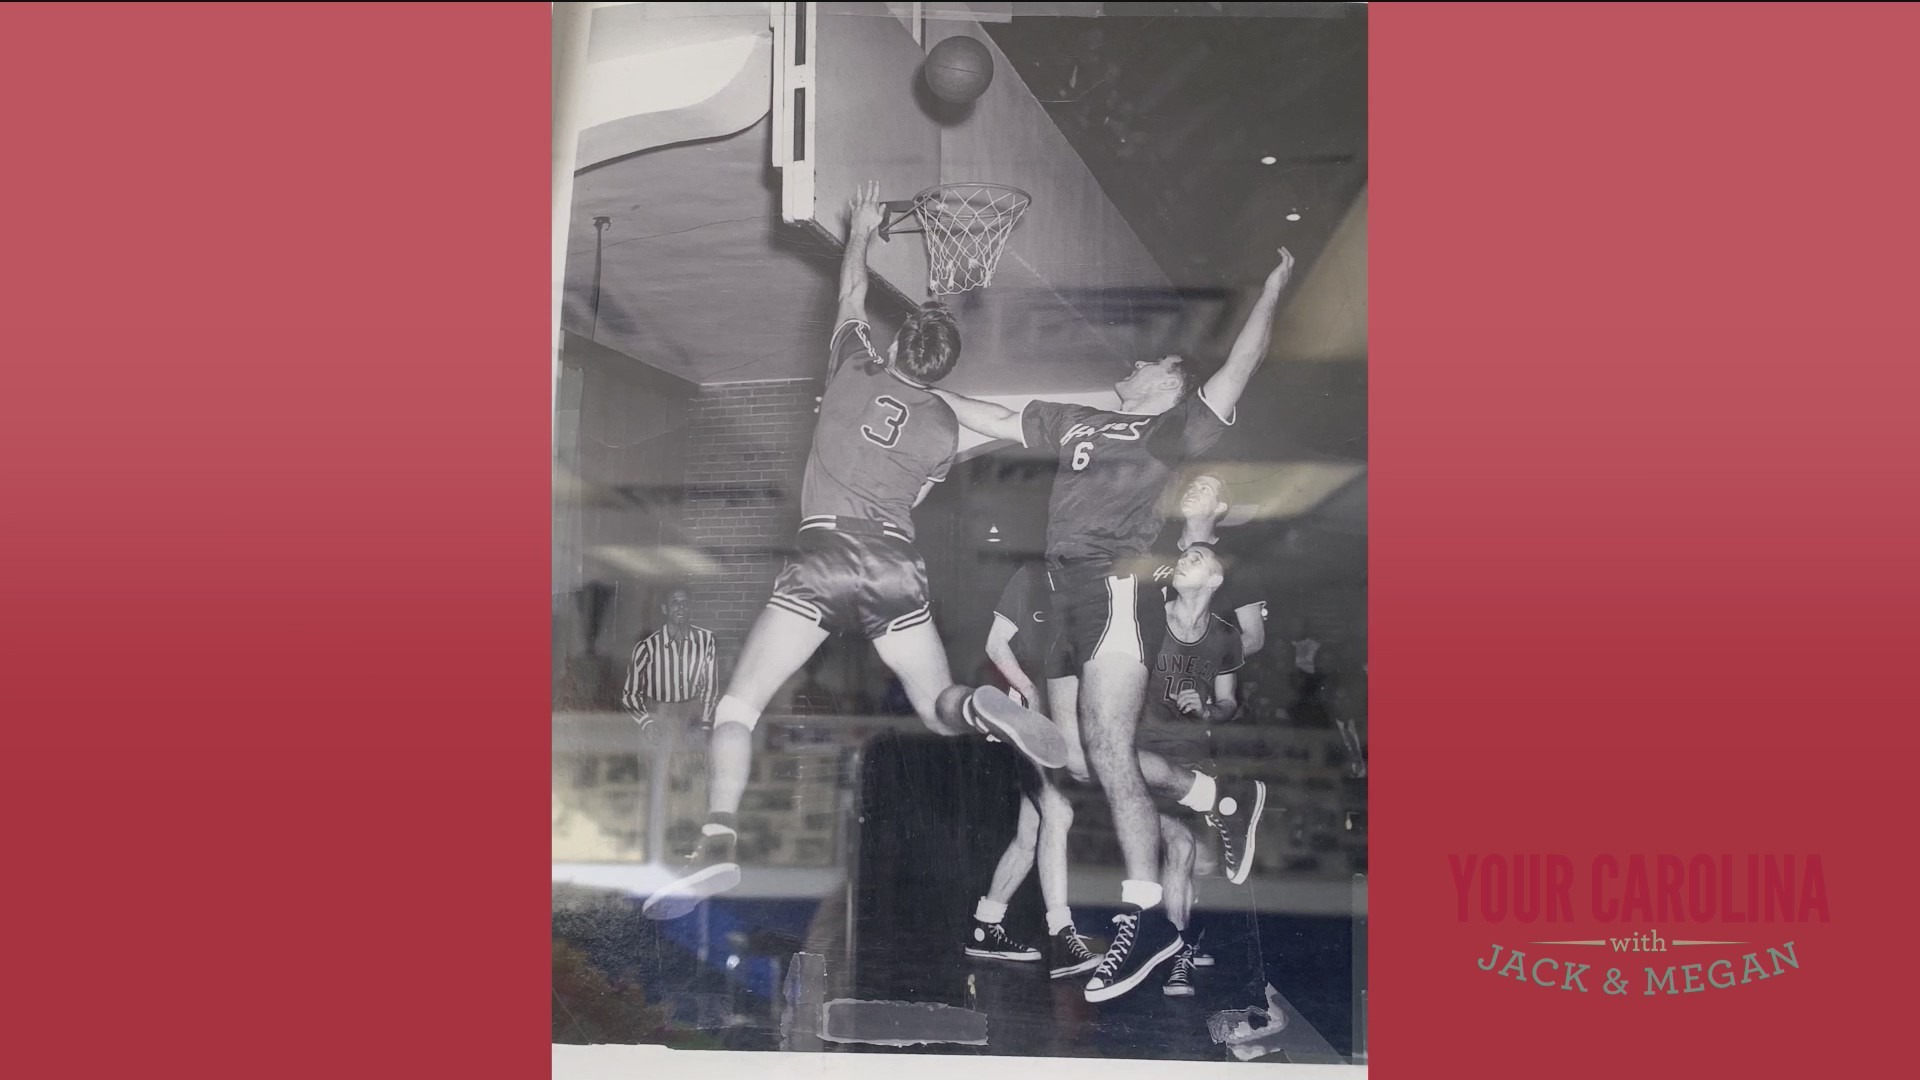 Southern textile league basketball was Upstate's March madness for more than 50 years